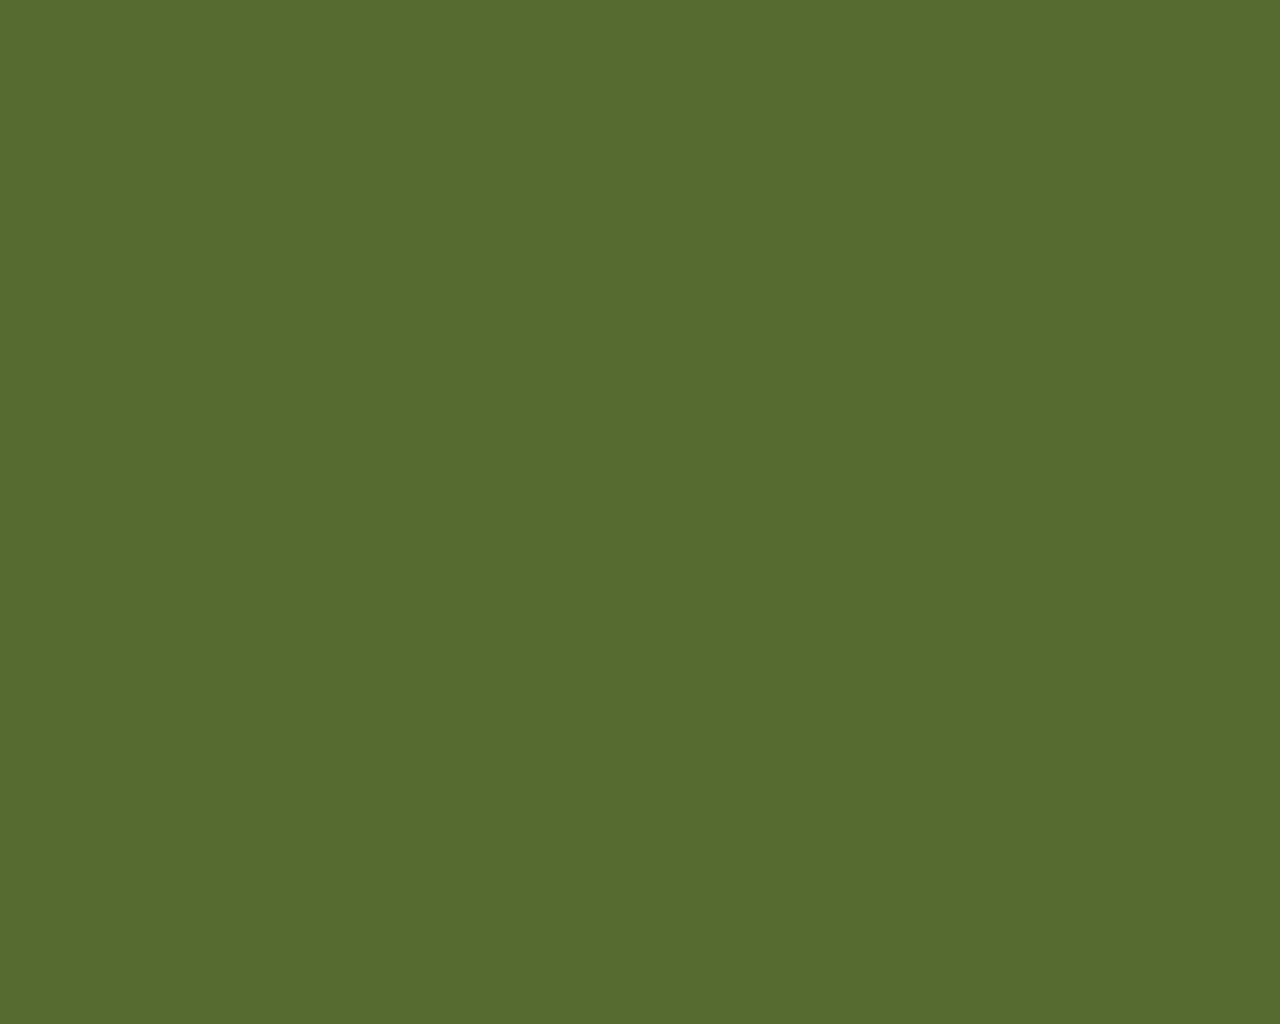 Color Your World Olive Green Tourmaline 1280x1024